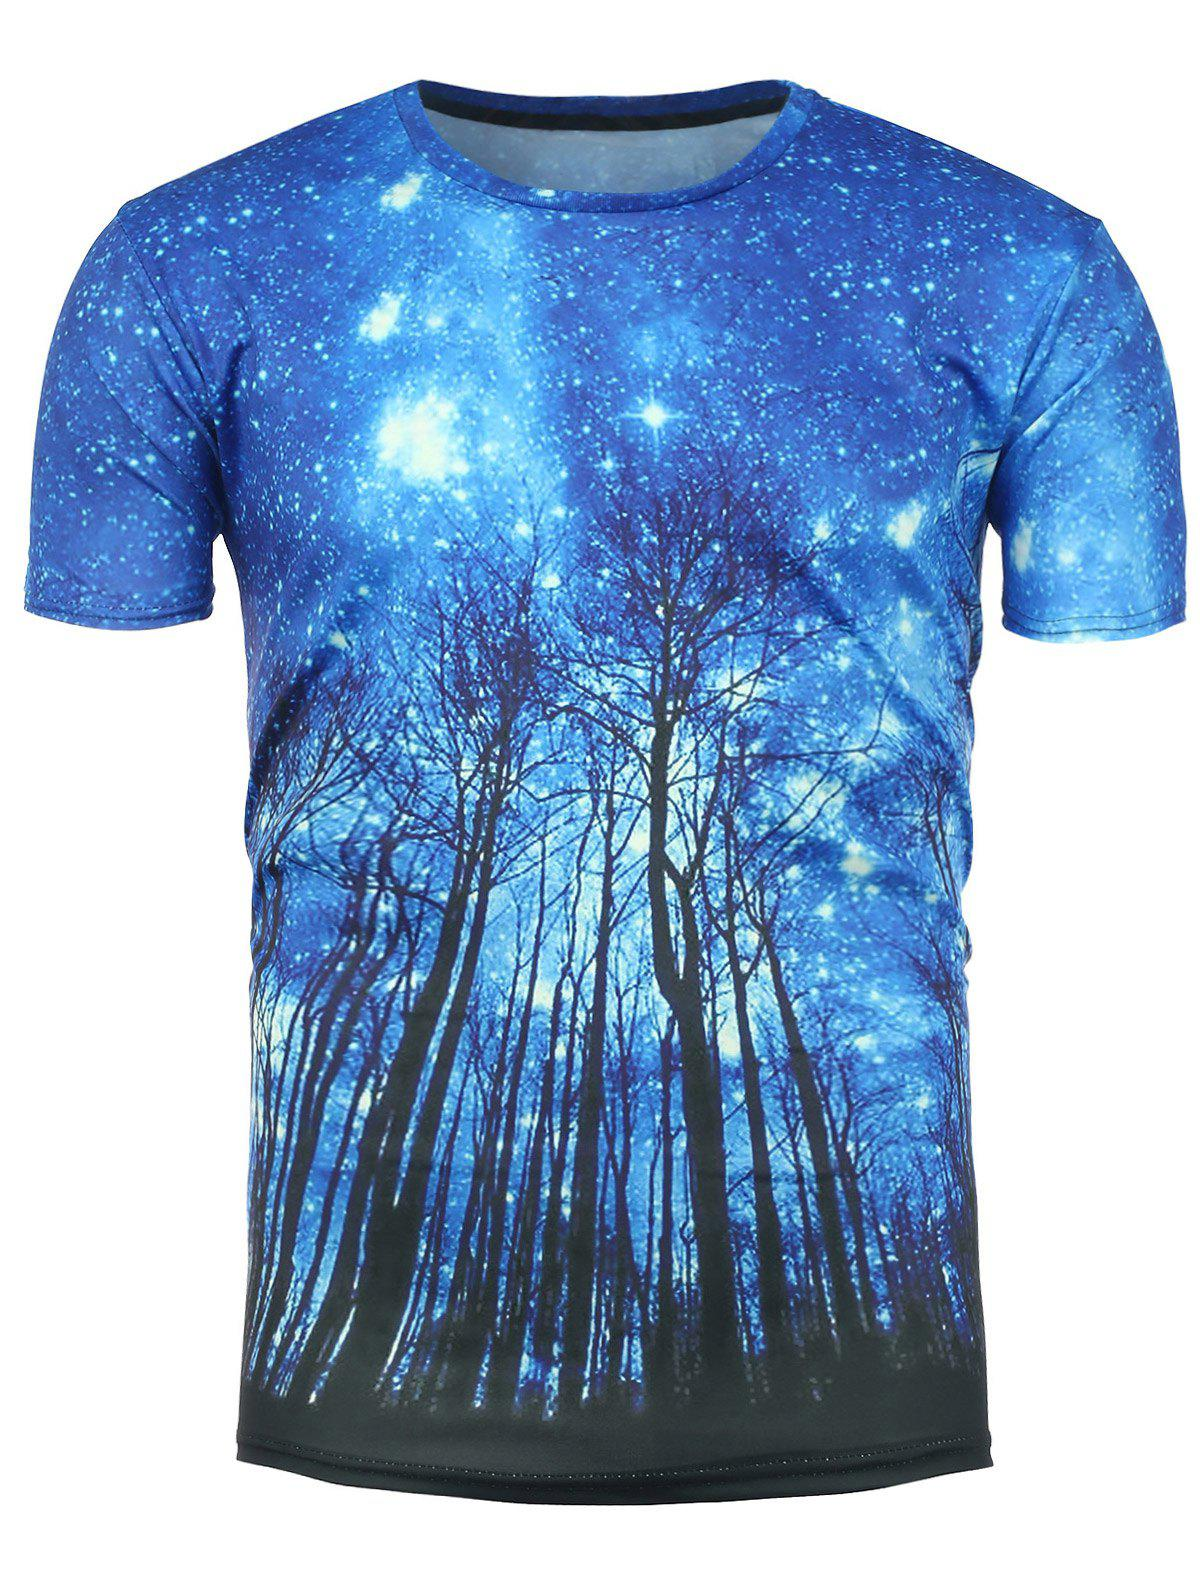 Short Sleeve 3D Trees Galaxy Print T-Shirt - COLORMIX 2XL